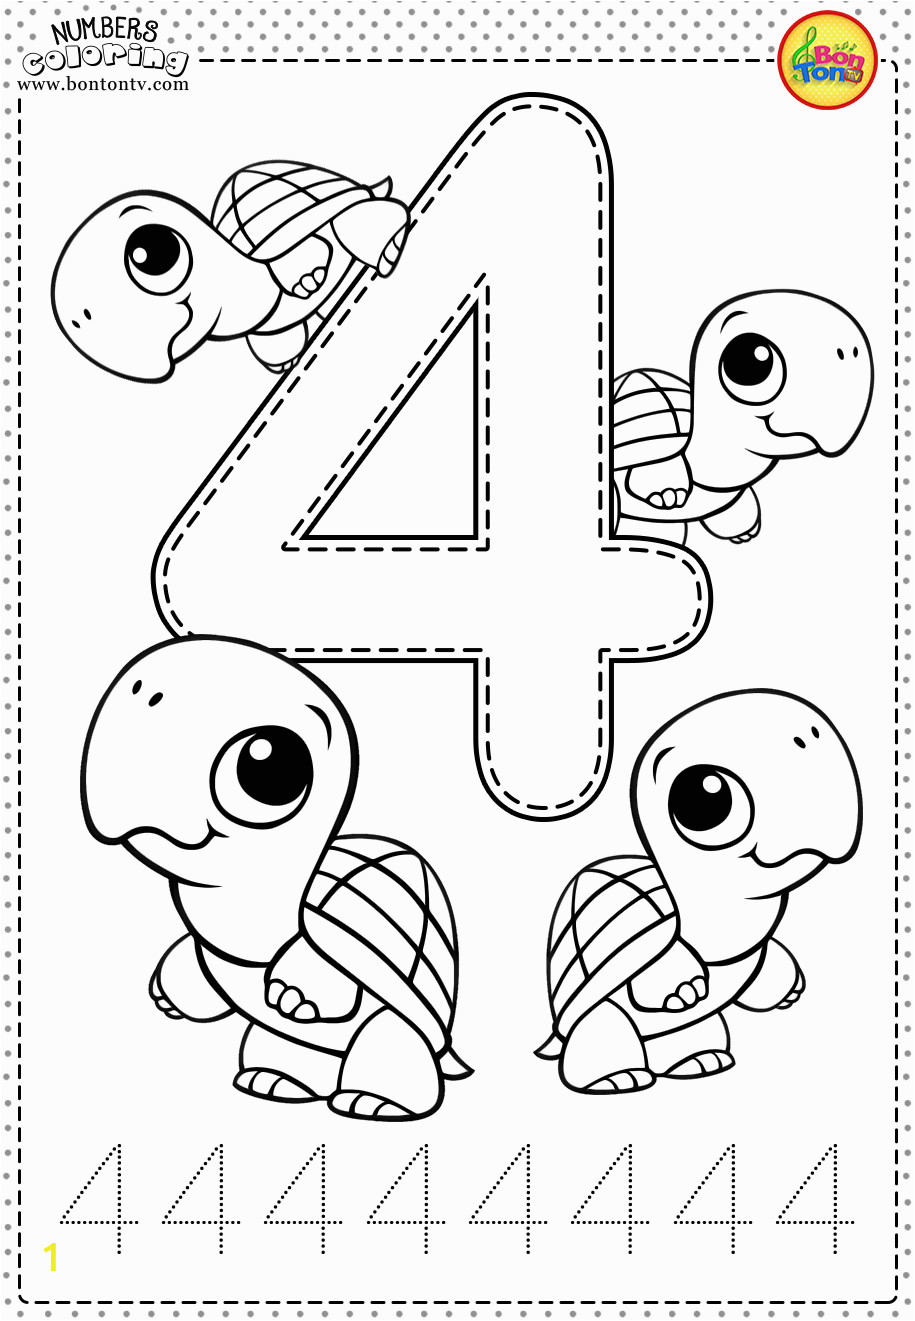 Coloring Number Pages for Kindergarten Number 4 Preschool Printables Free Worksheets and